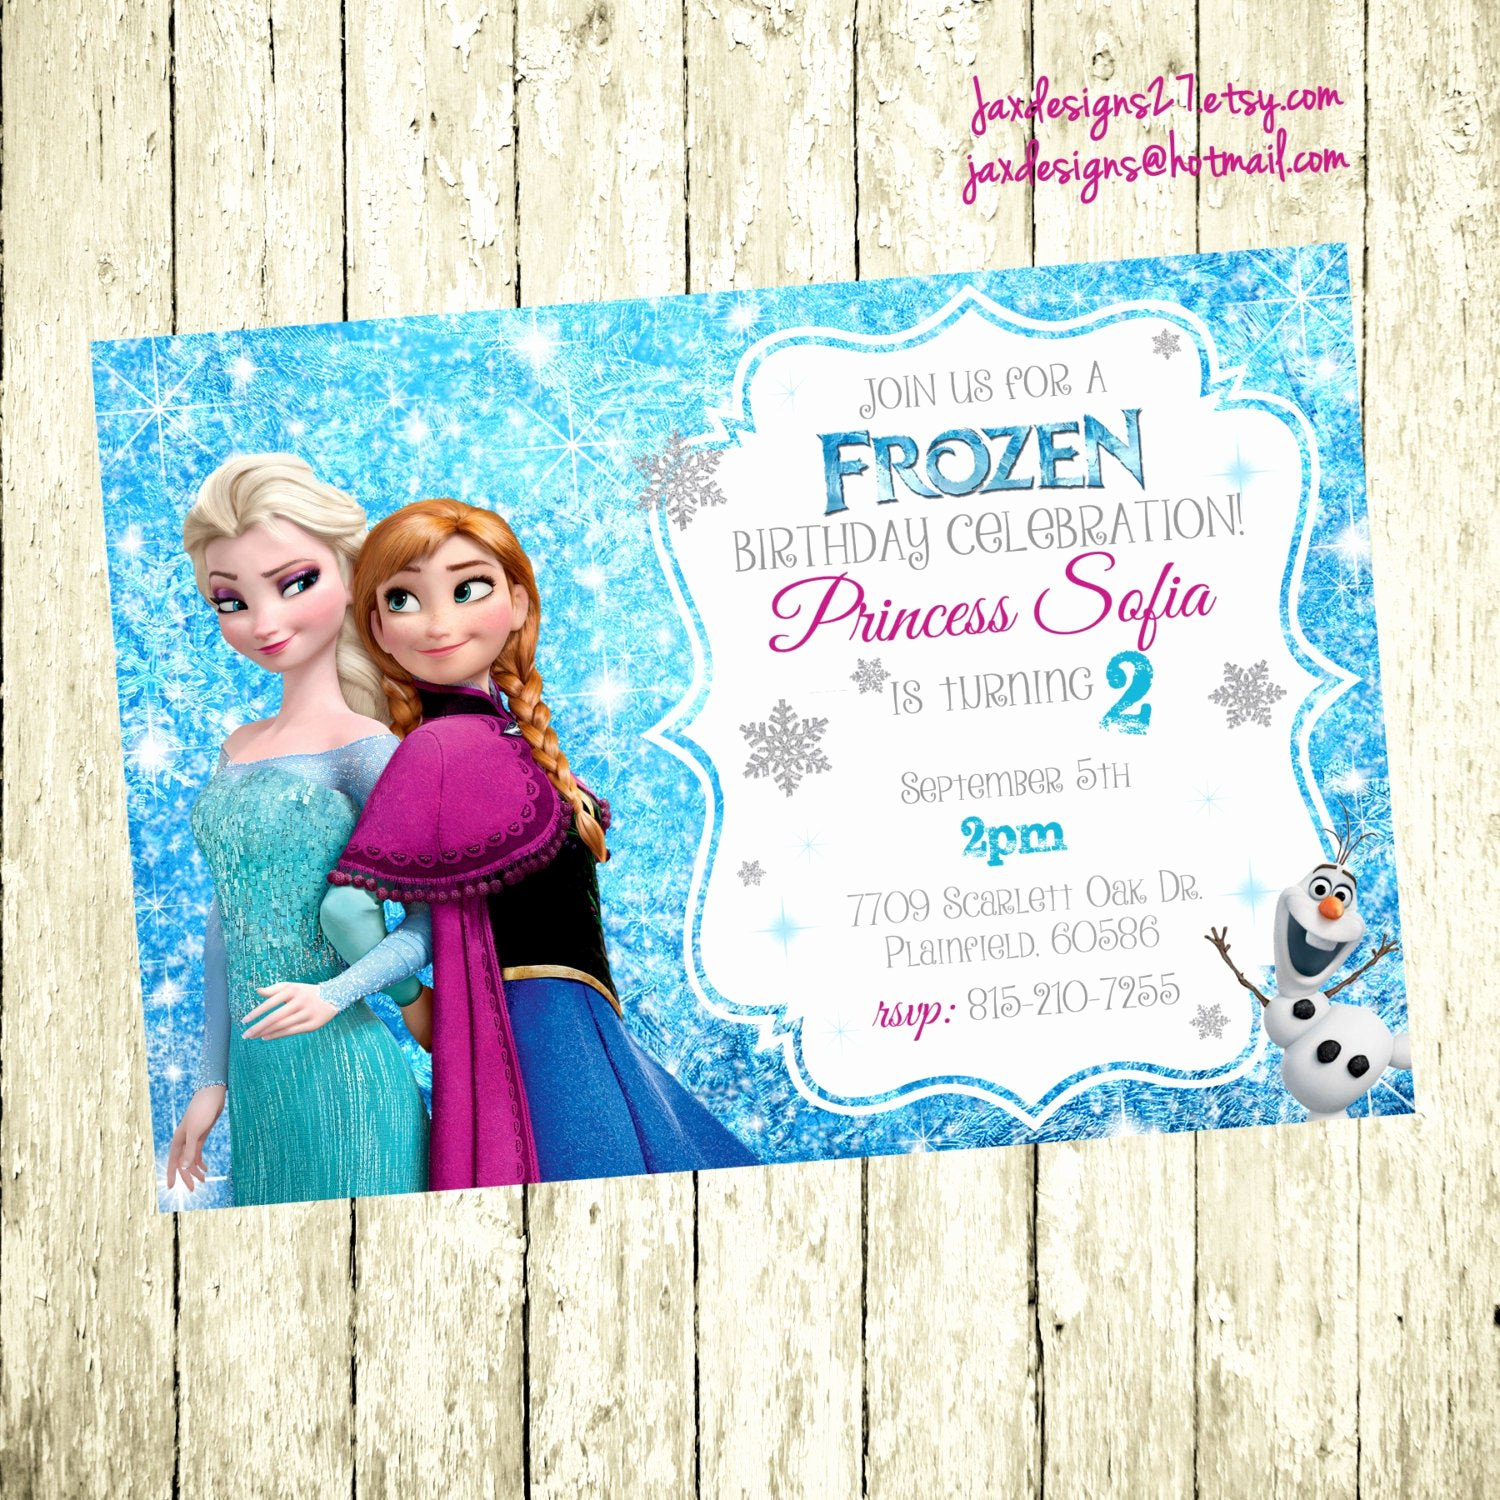 Frozen Birthday Invitations Wording Beautiful Frozen Birthday Invitation Frozen Birthday Party Frozen